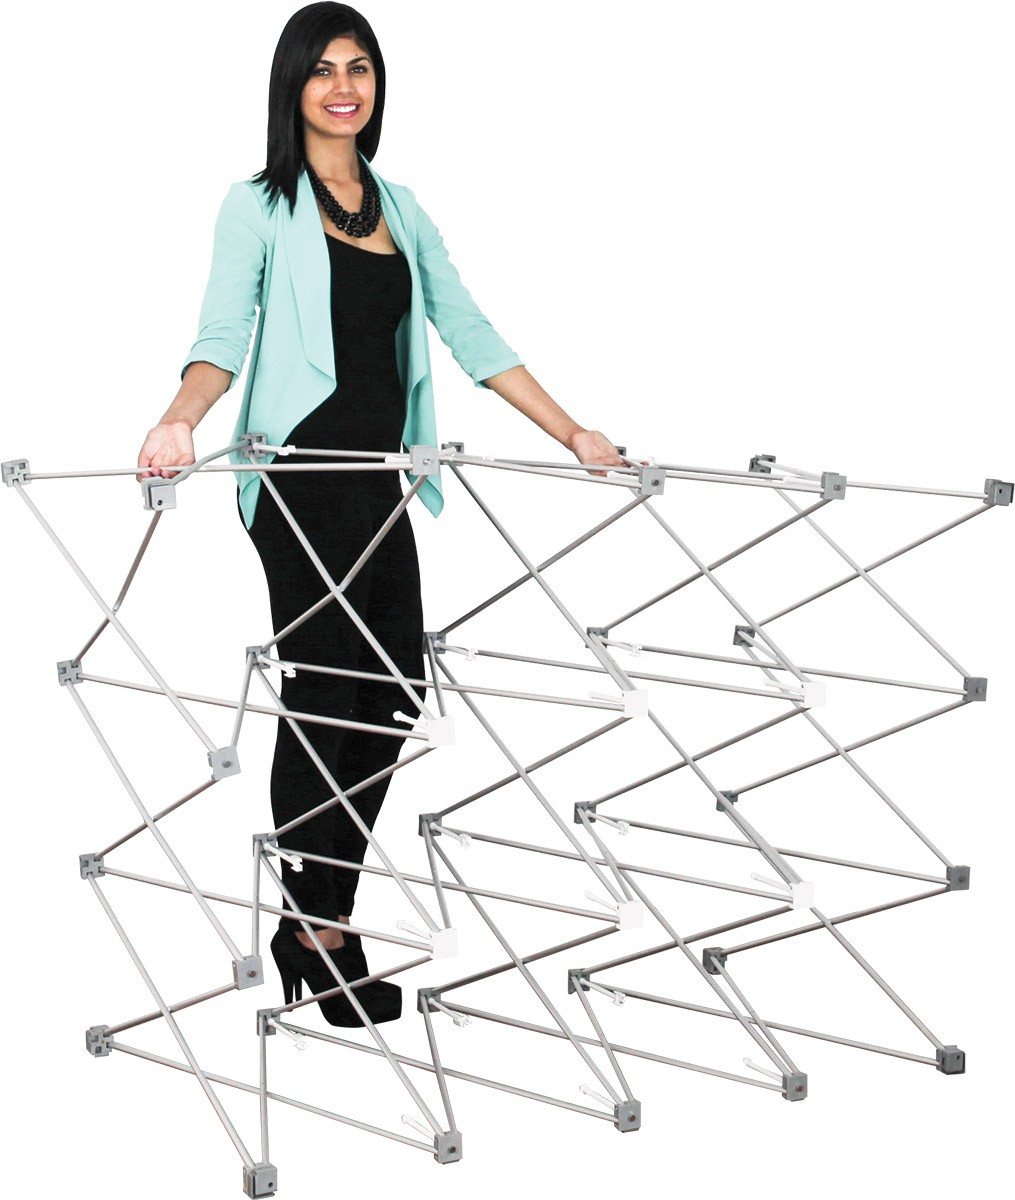 Embrace 30' Tension Fabric Display